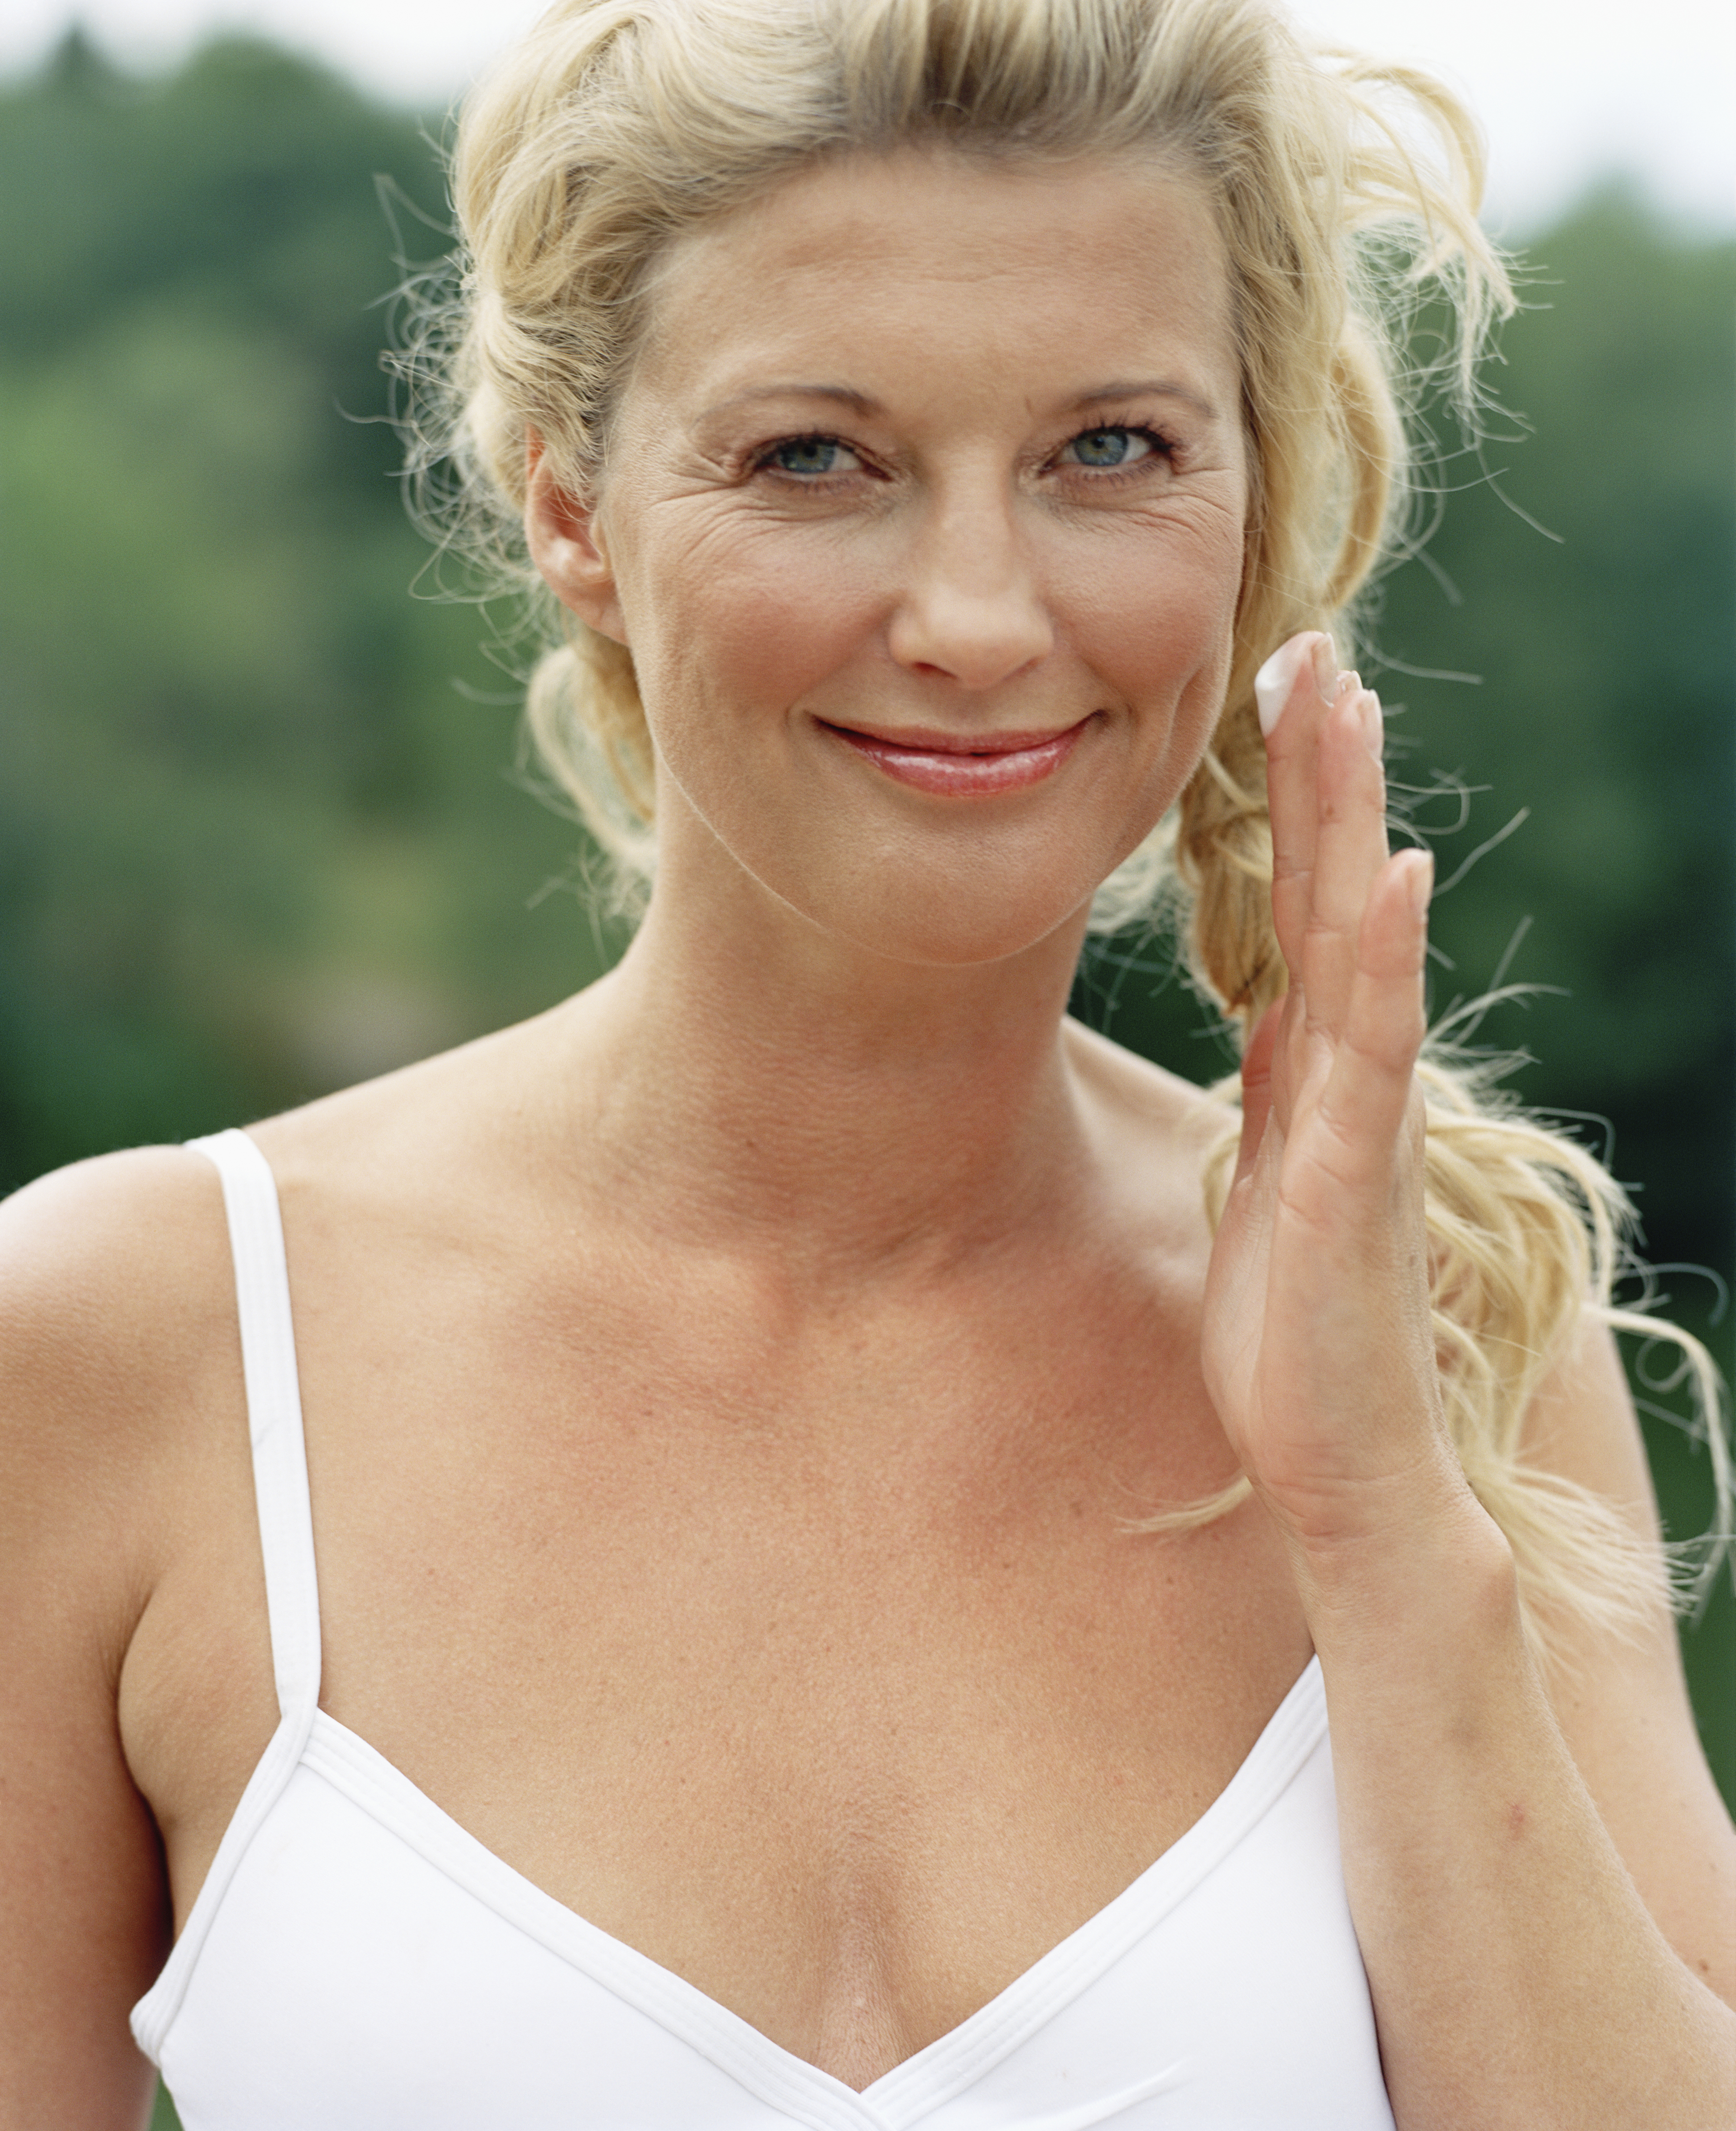 Here S Where To Find The Best Moisturizer For Women Over 50